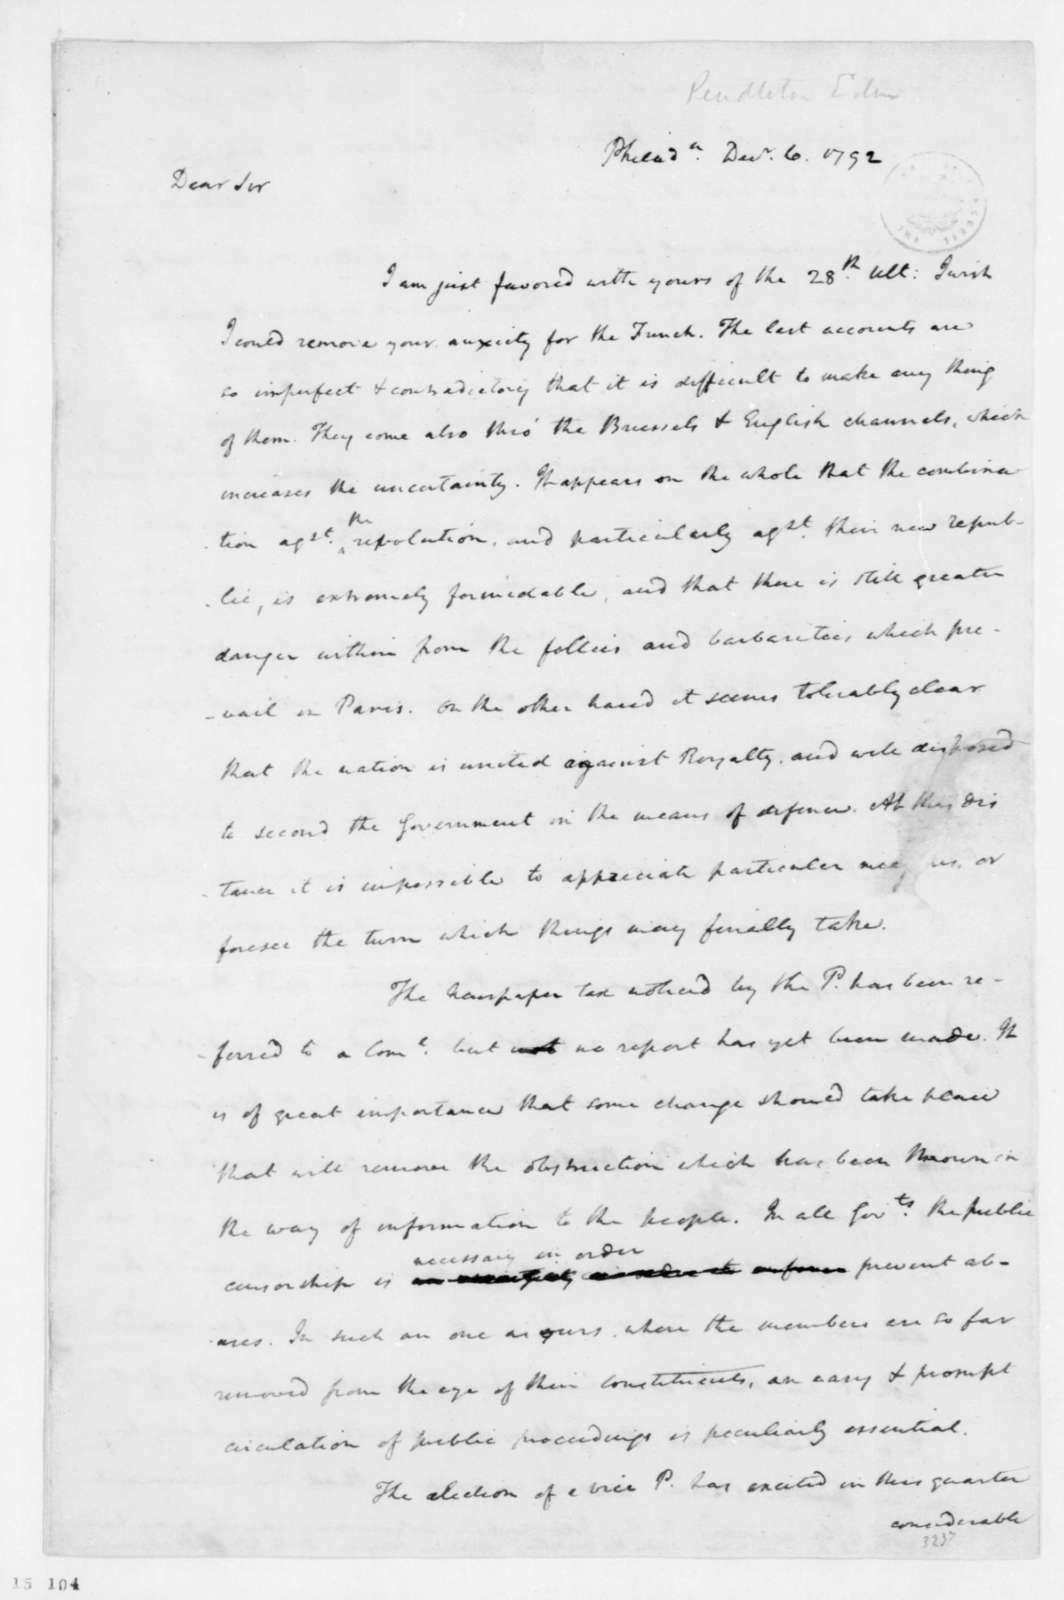 James Madison to Edmund Pendleton, December 6, 1792.